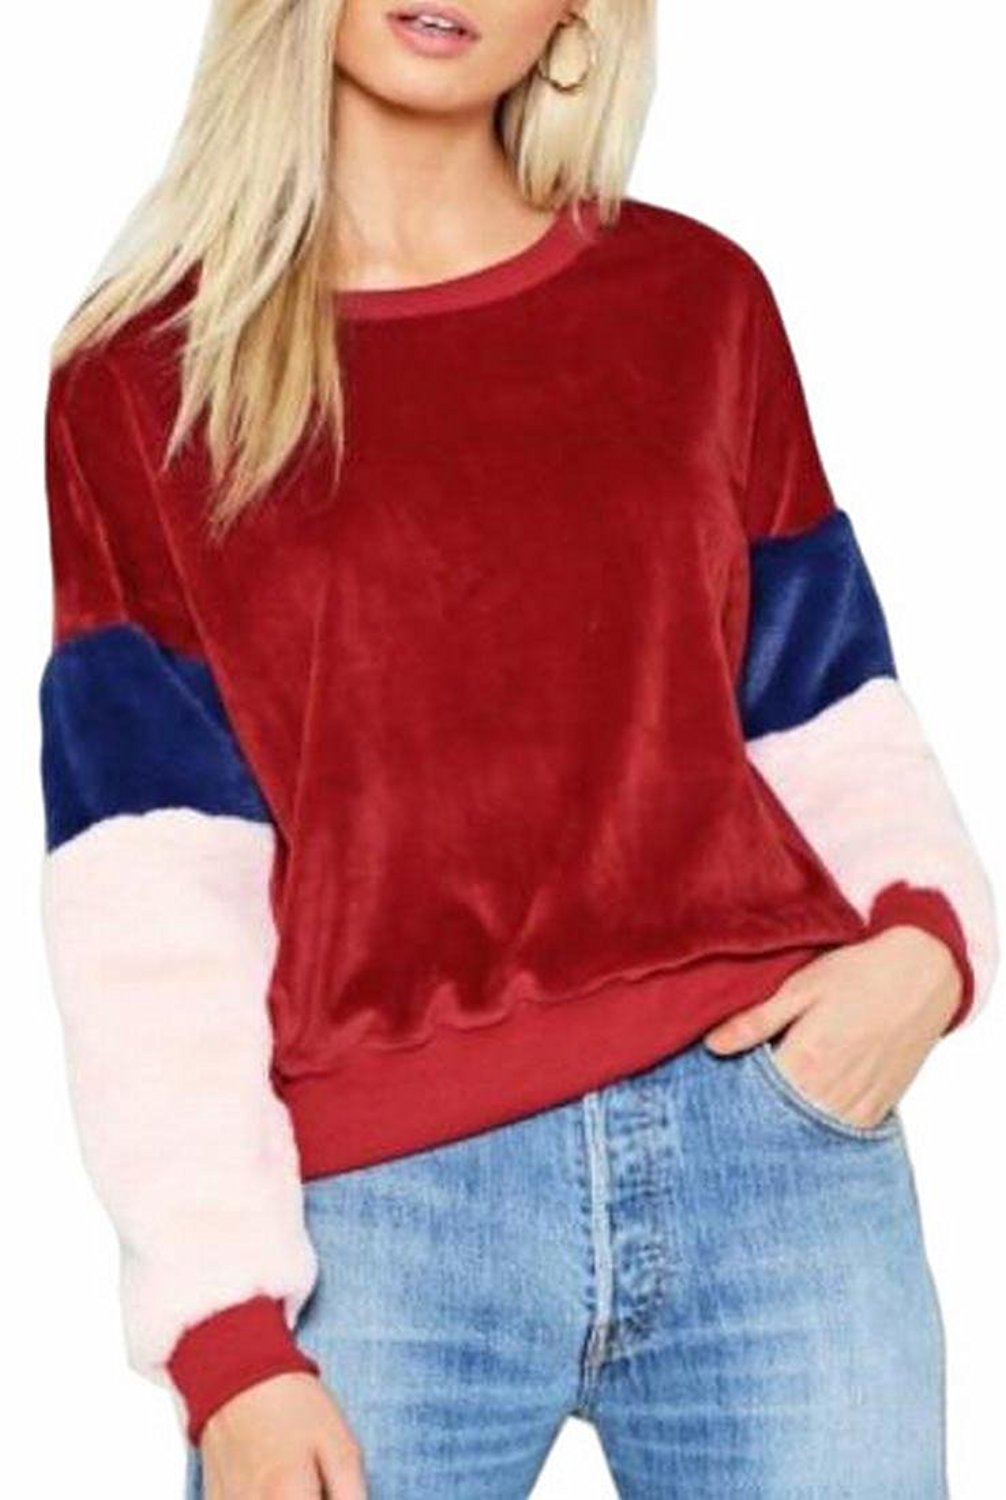 CBTLVSN Women Fashion Round Neck Long Sleeve Hit Color Pullover Sweatshirts